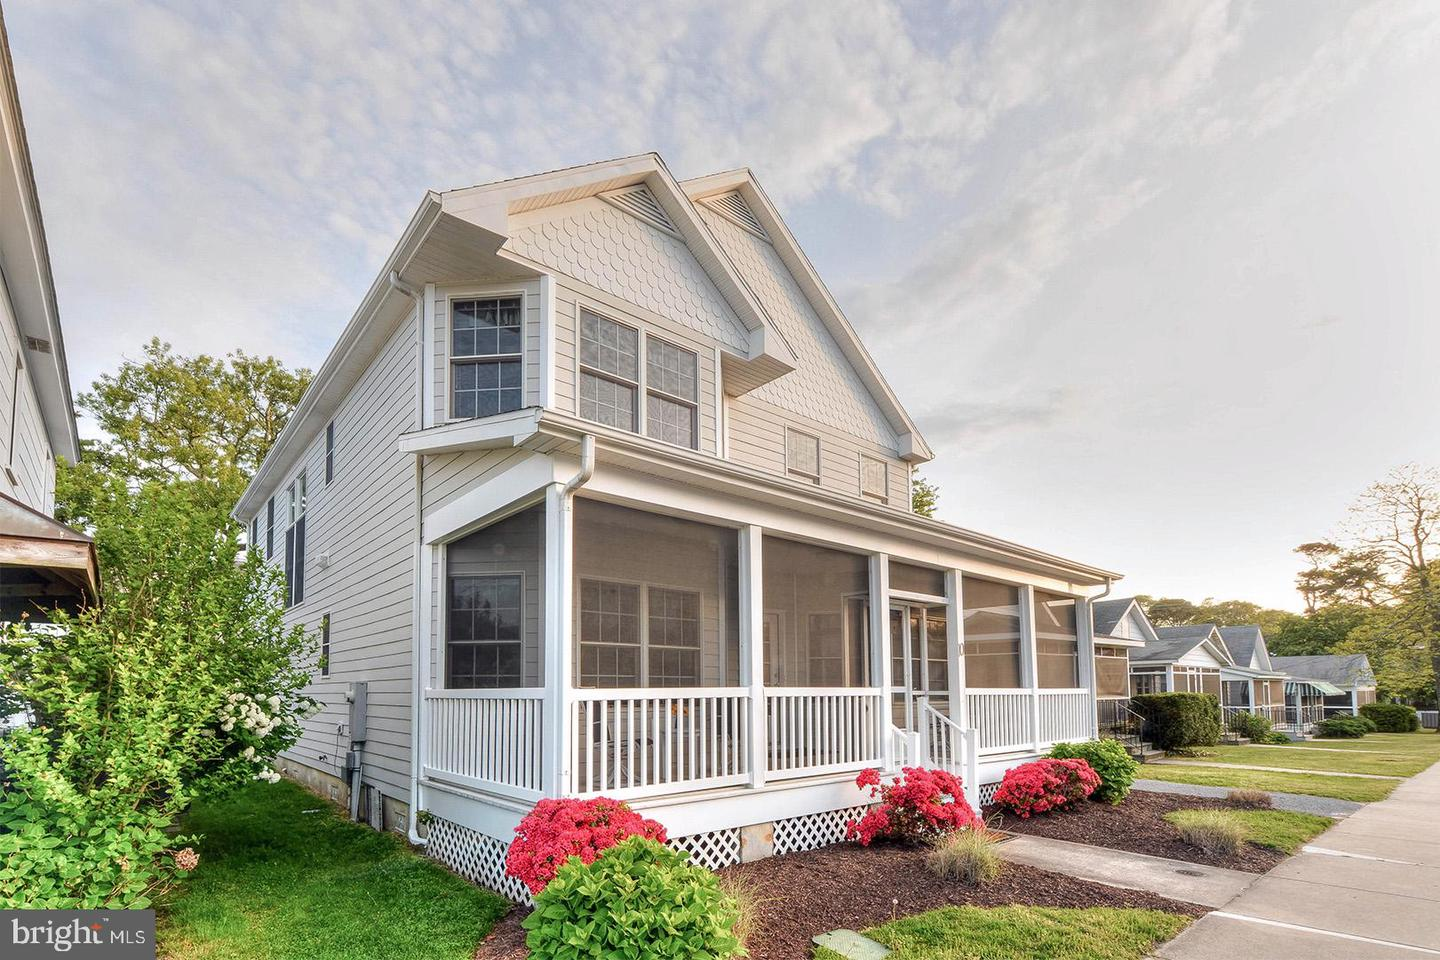 DESU139874-301711163130-2019-05-16-07-32-35 10 New Castle St | Rehoboth Beach, DE Real Estate For Sale | MLS# Desu139874  - Rehoboth Beach Real Estate - Bryce Lingo and Shaun Tull REALTORS, Rehoboth Beach, Delaware